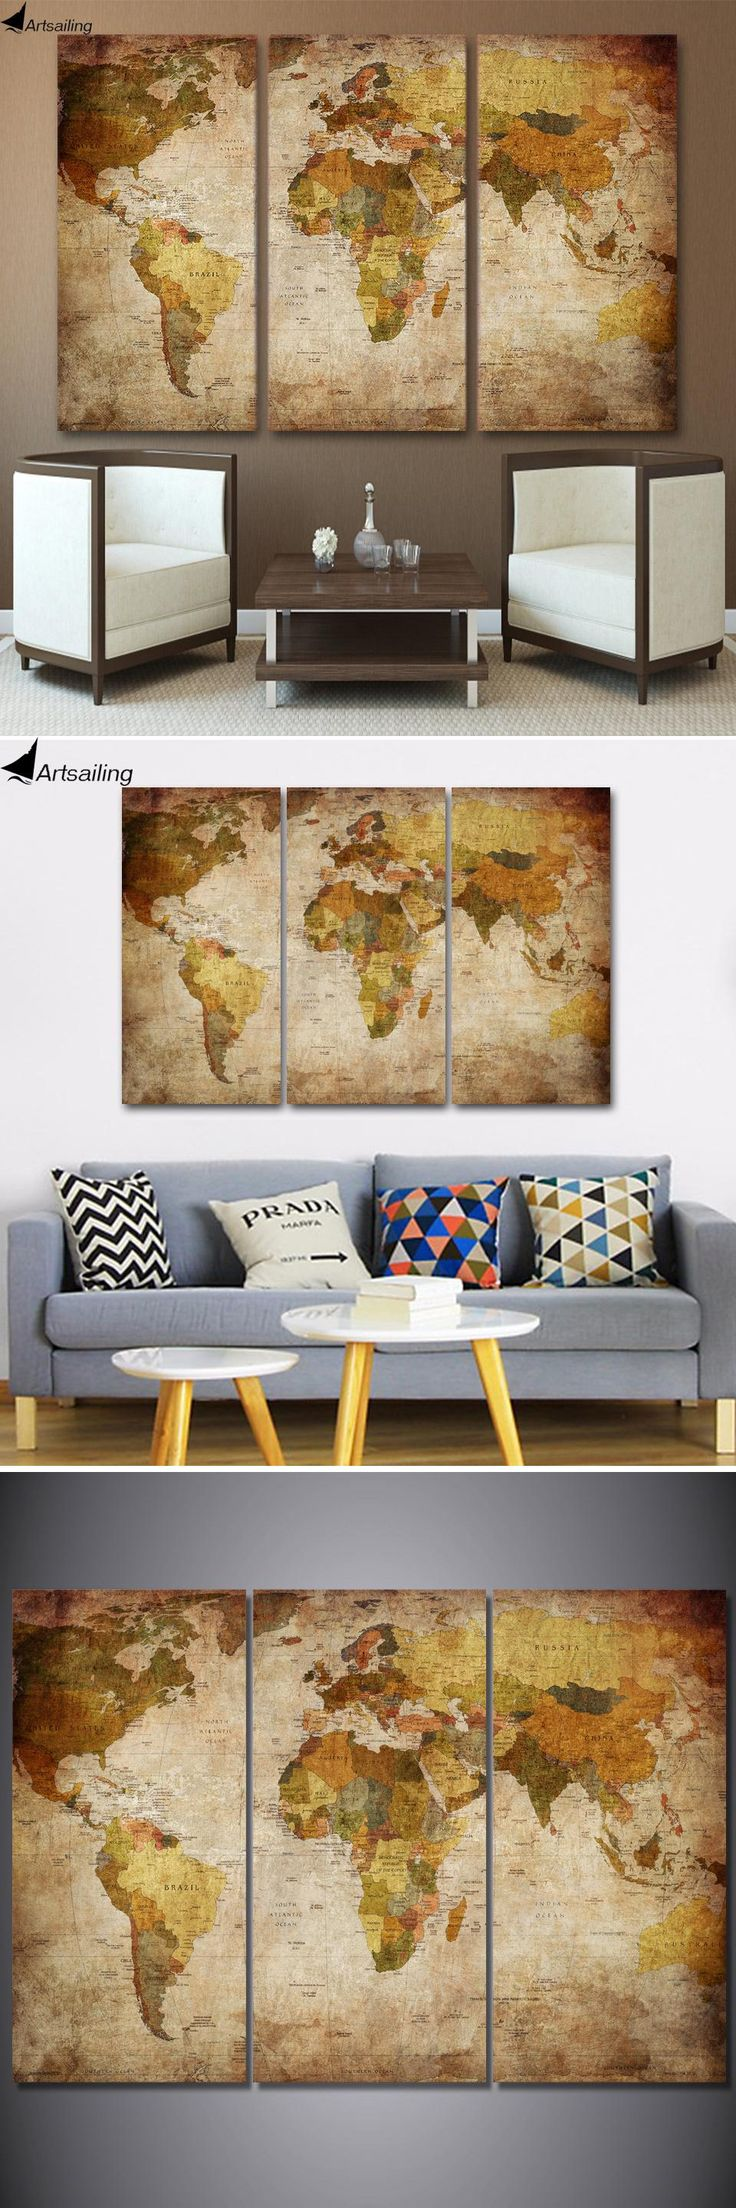 [Visit to Buy] HD printed 3 piece canvas art vintage world map painting room decor large canvas print wall art Free shipping/ny-5743 #Advertisement